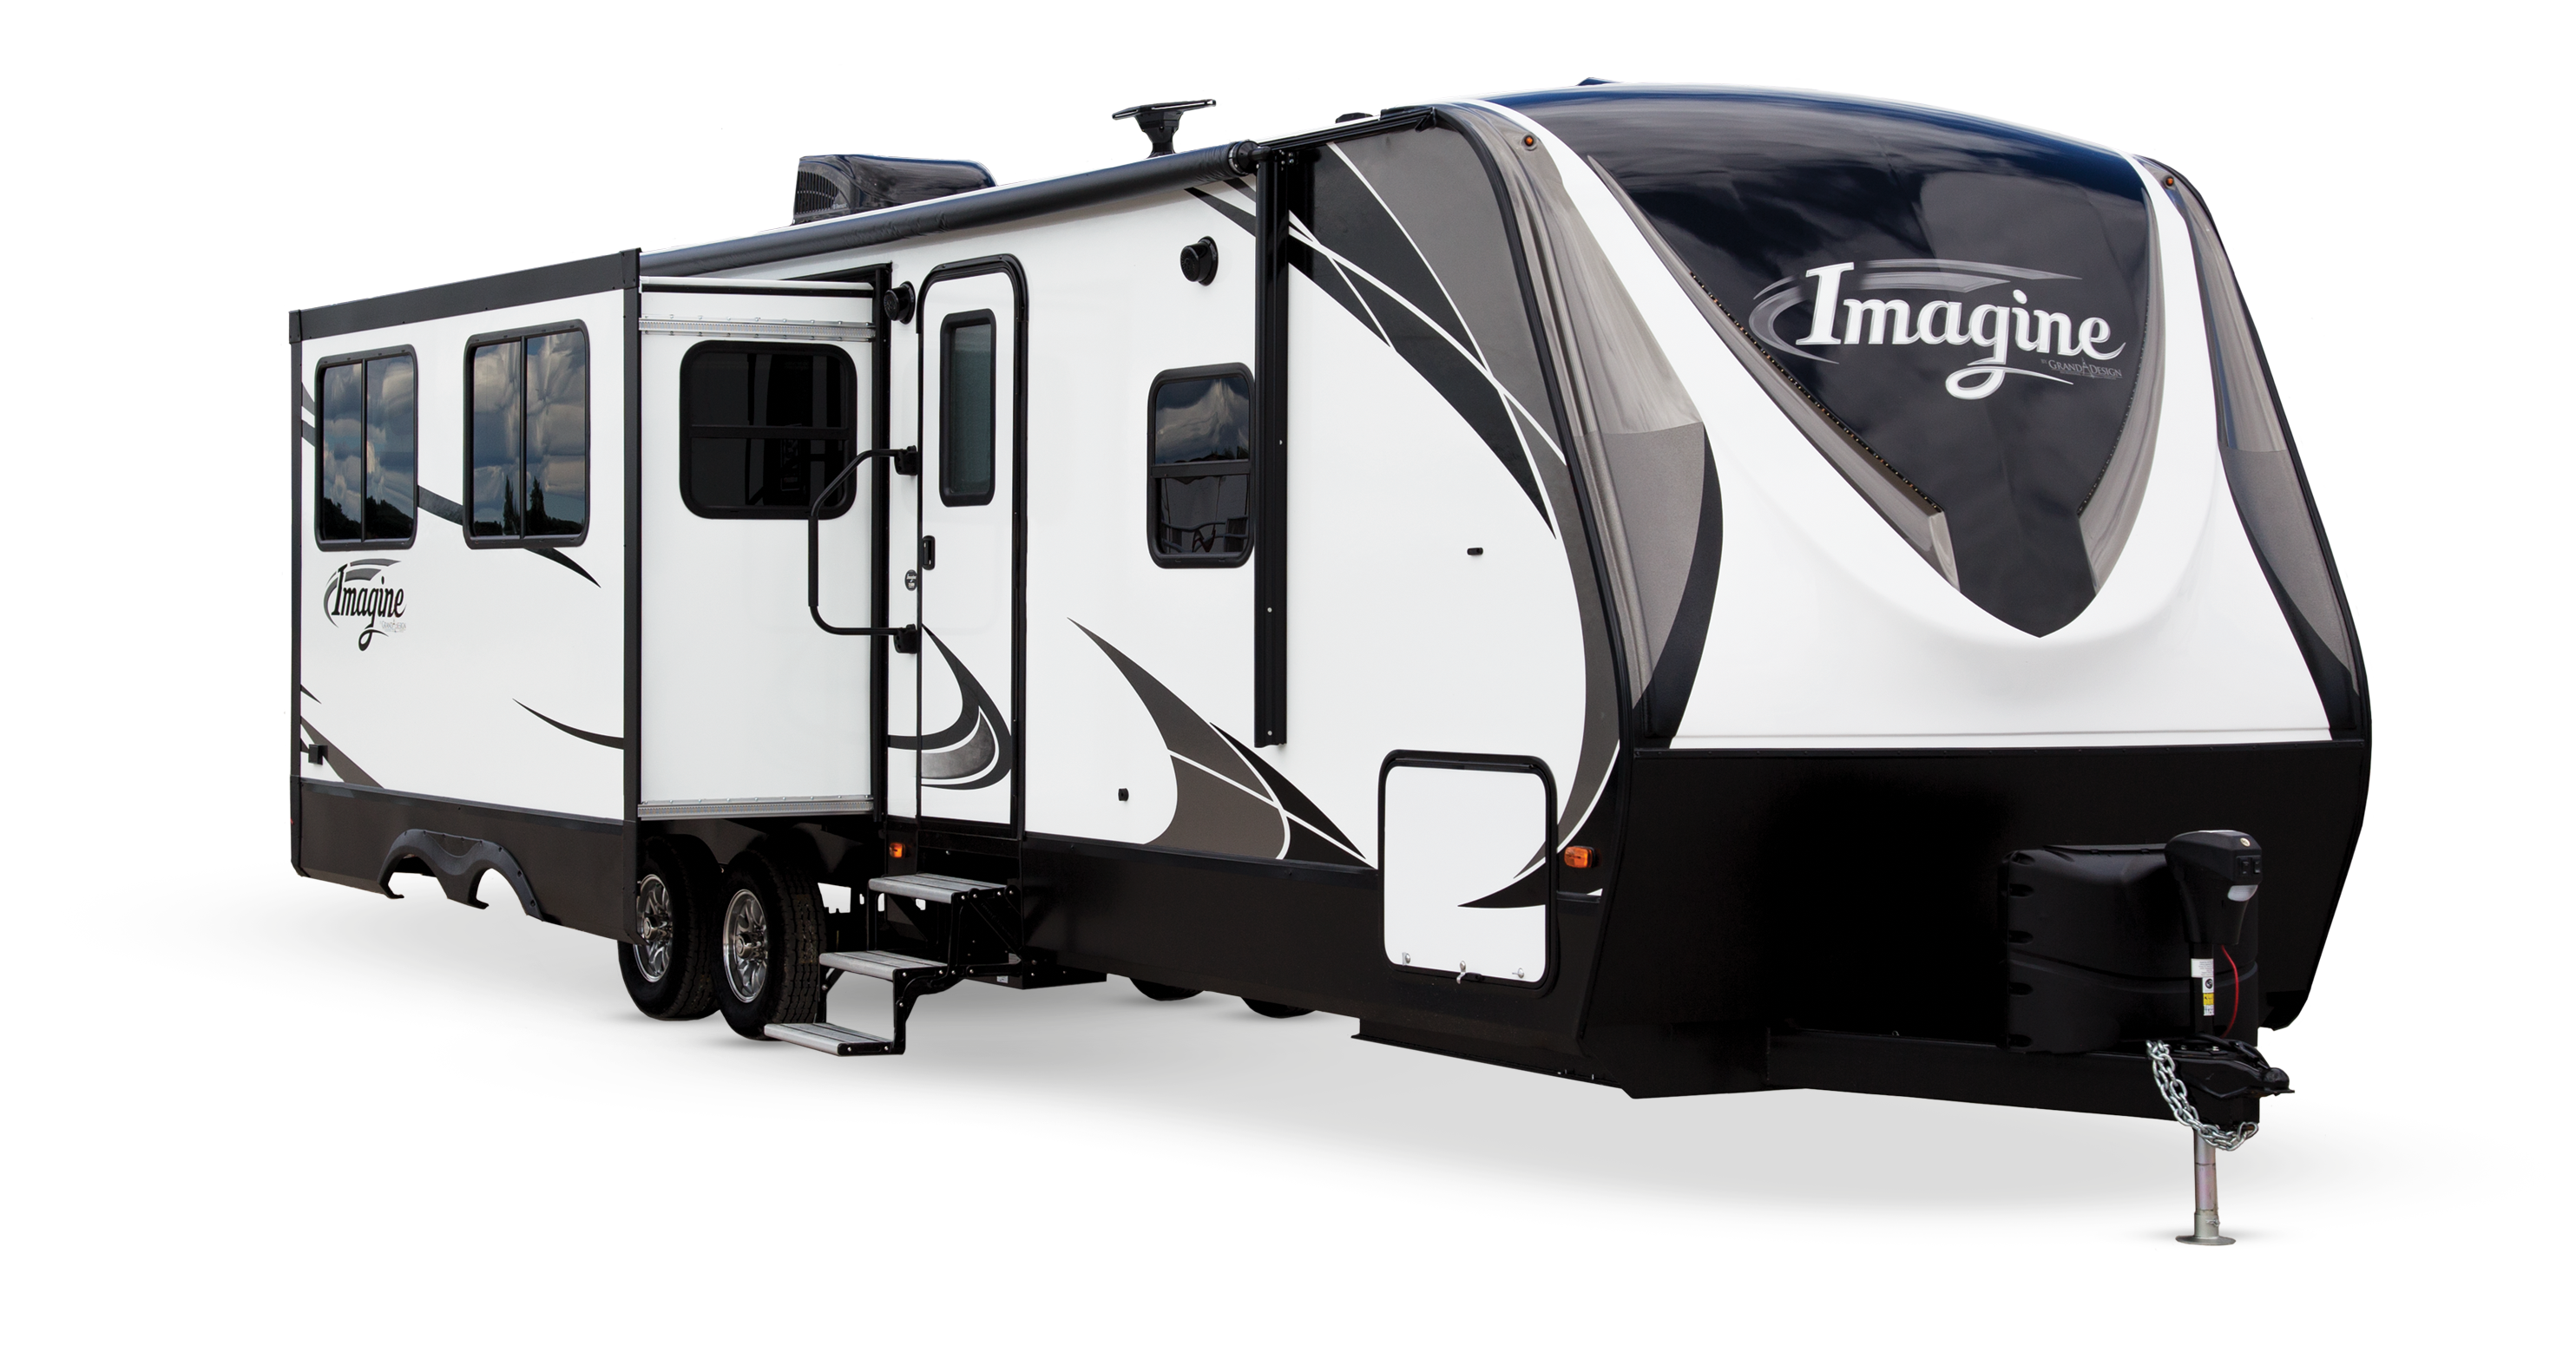 Grand Design Imagine Travel Trailer Exterior